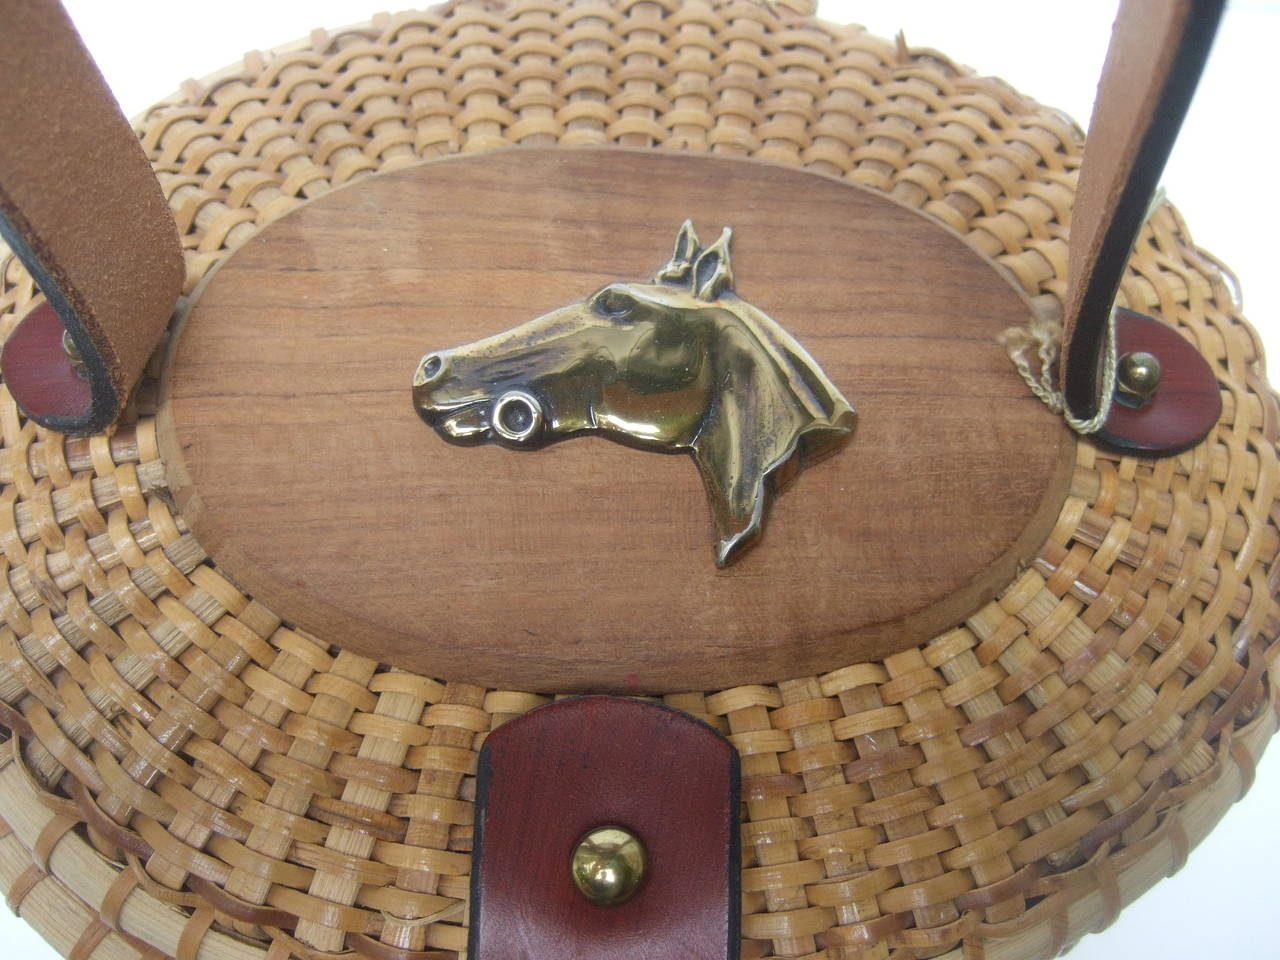 Brown Oval Wicker Basket Equestrian Theme Handbag c 1970s For Sale